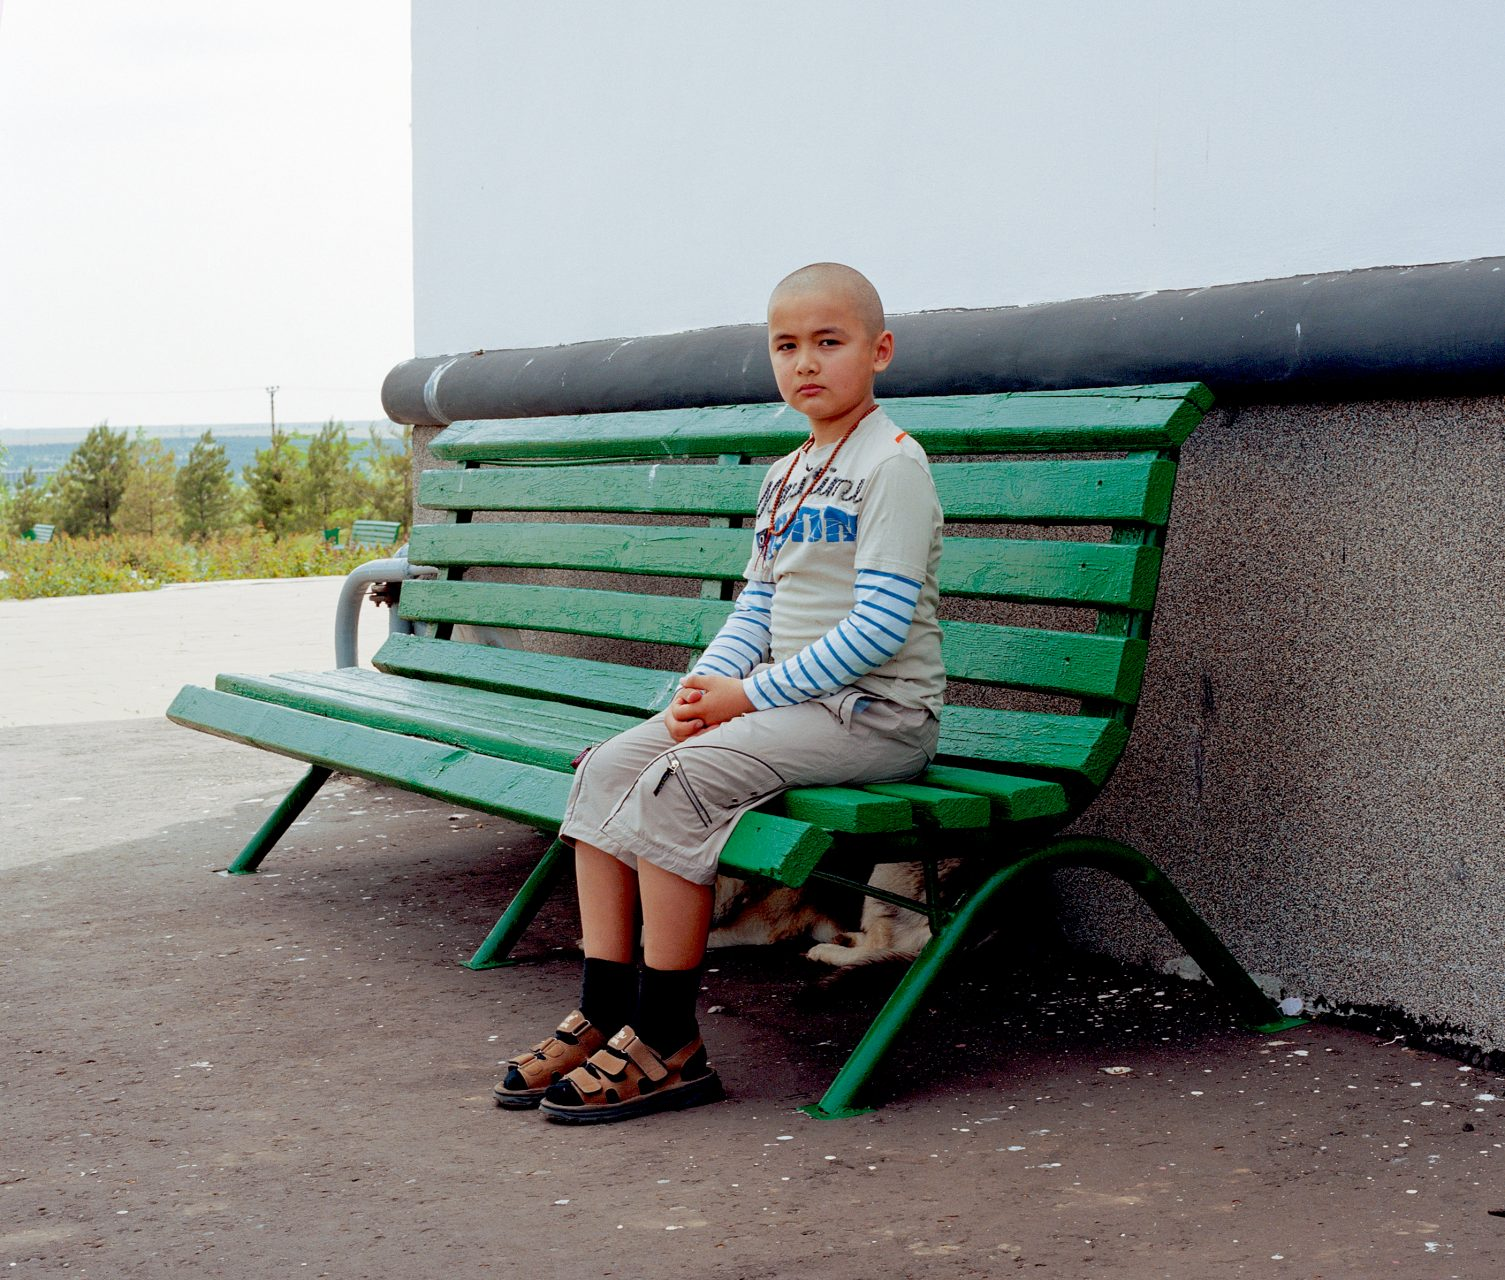 Russkie #110, c-print on dibond,100 x 125 cm, 2007